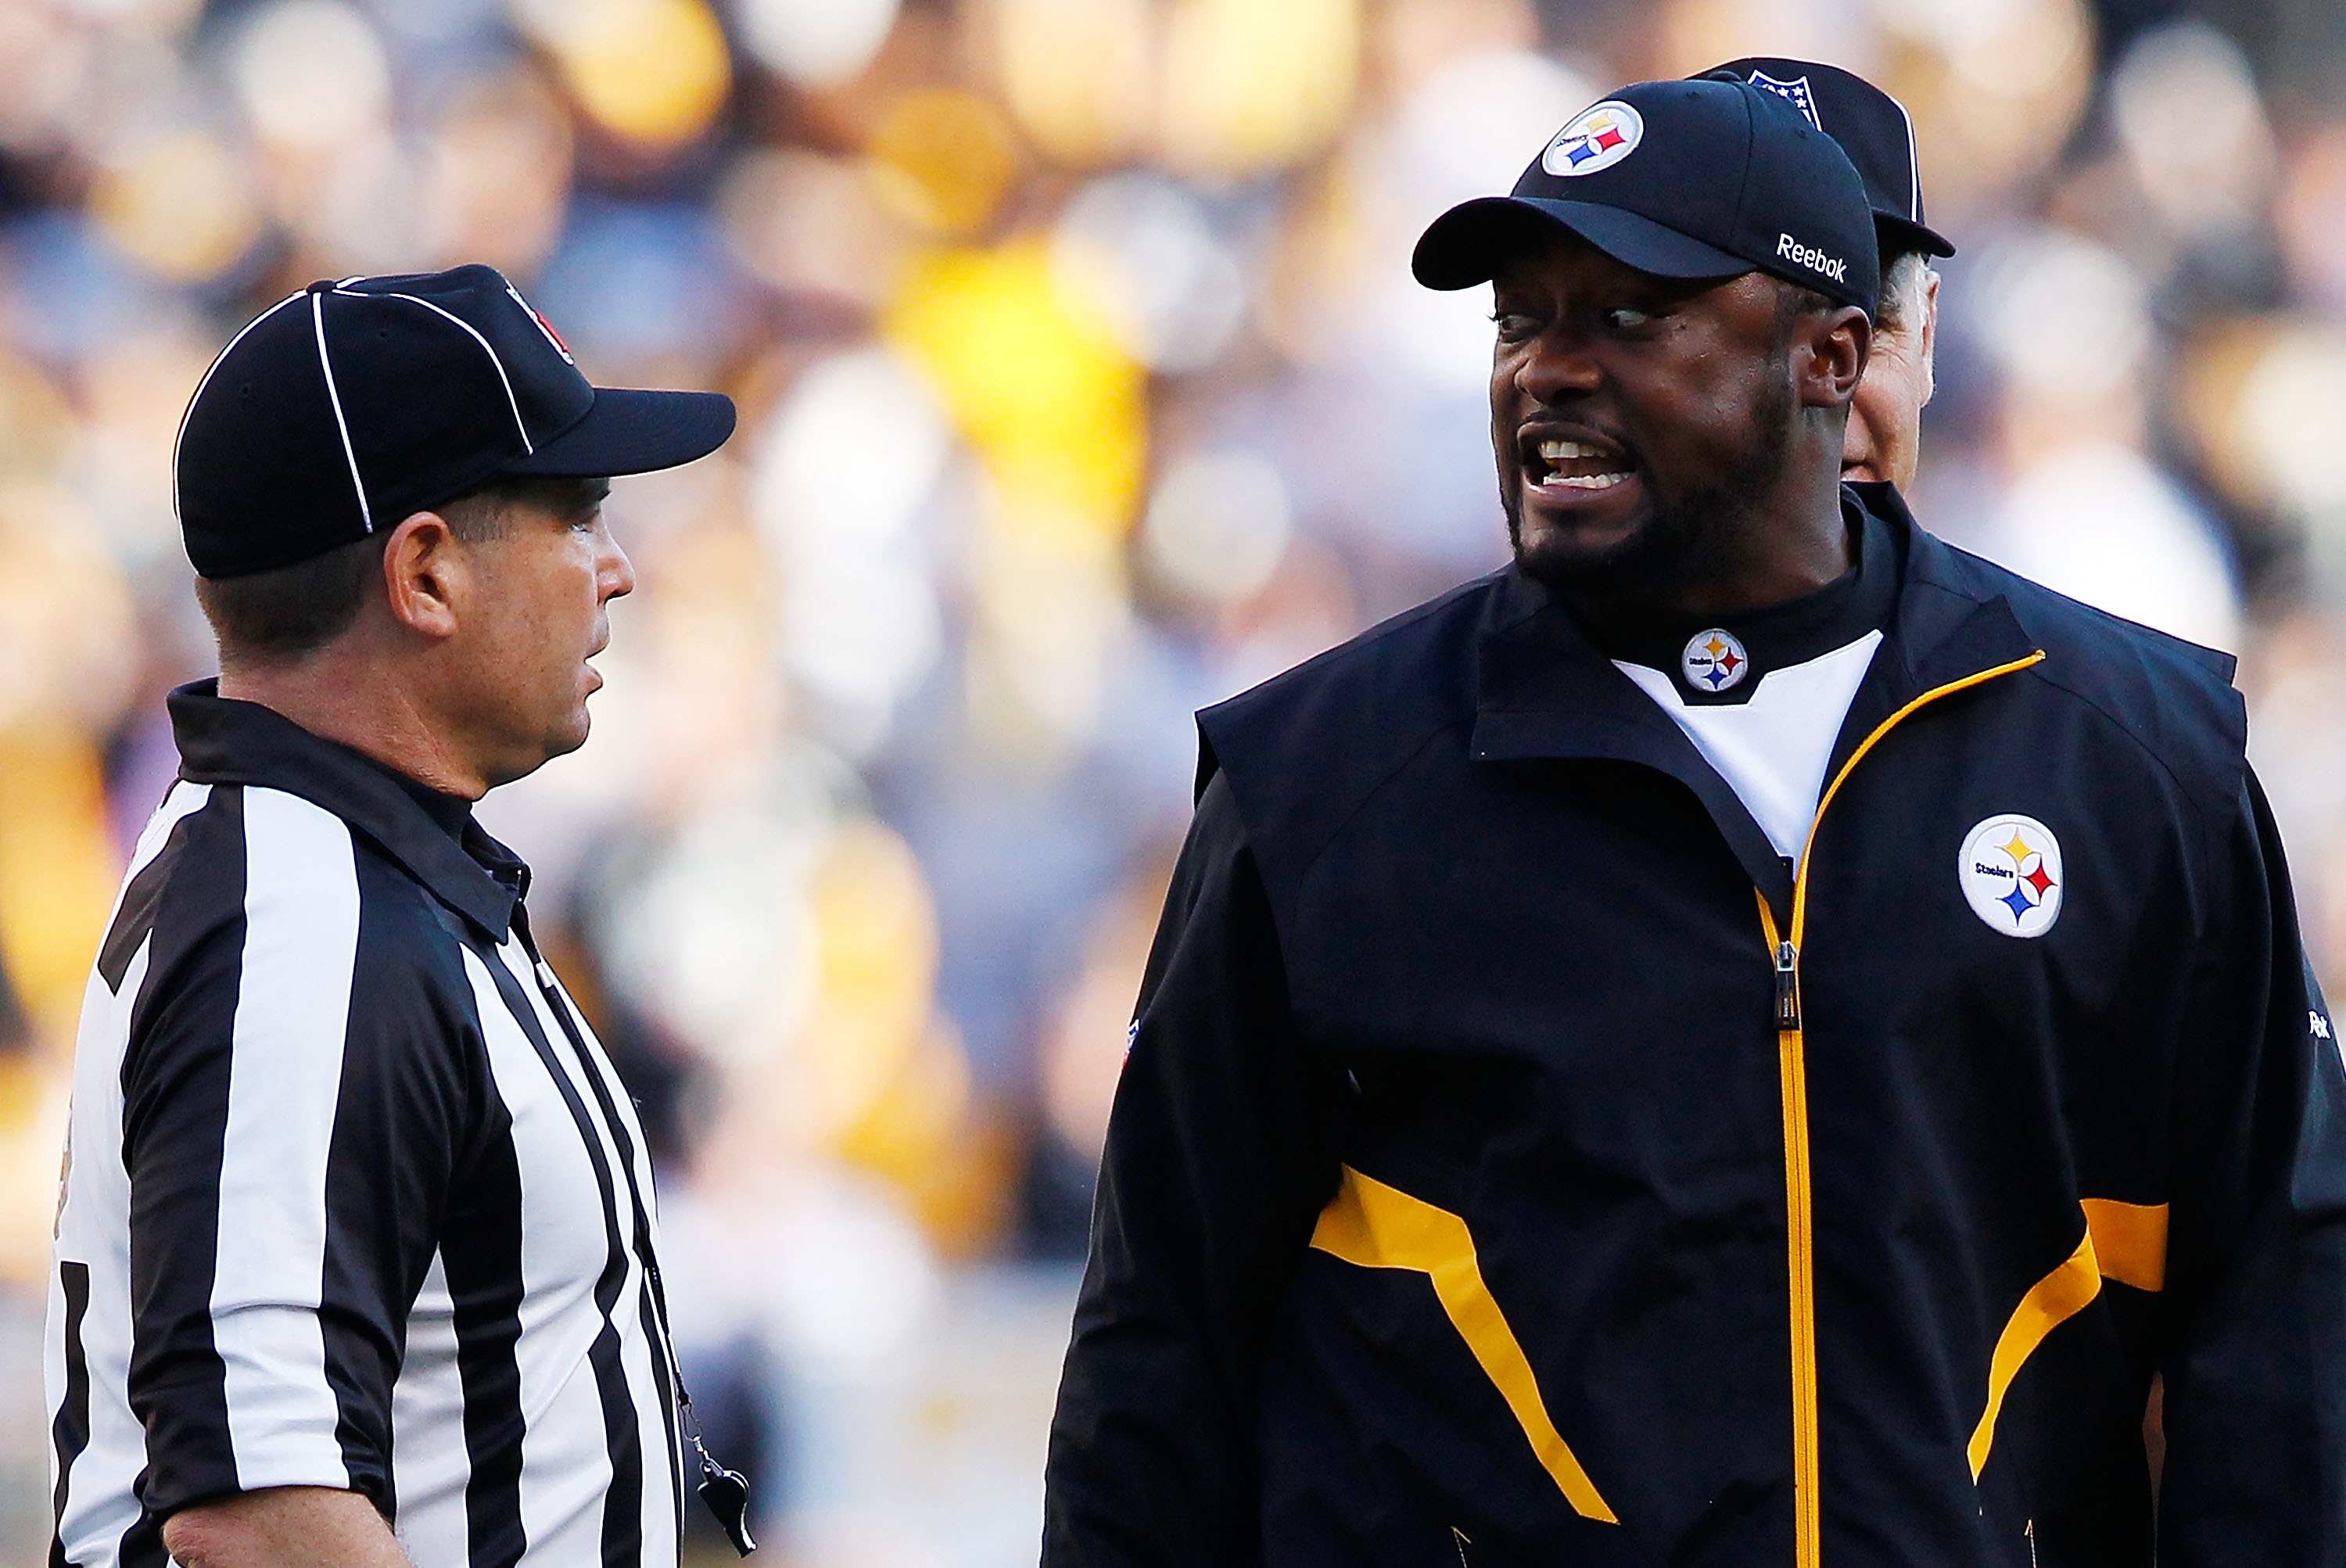 PITTSBURGH - NOVEMBER 21:  Head coach Mike Tomlin of the Pittsburgh Steelers argues with referees after a scrum took place in the middle of the field during the game against the Oakland Raiders on November 21, 2010 at Heinz Field in Pittsburgh, Pennsylvan